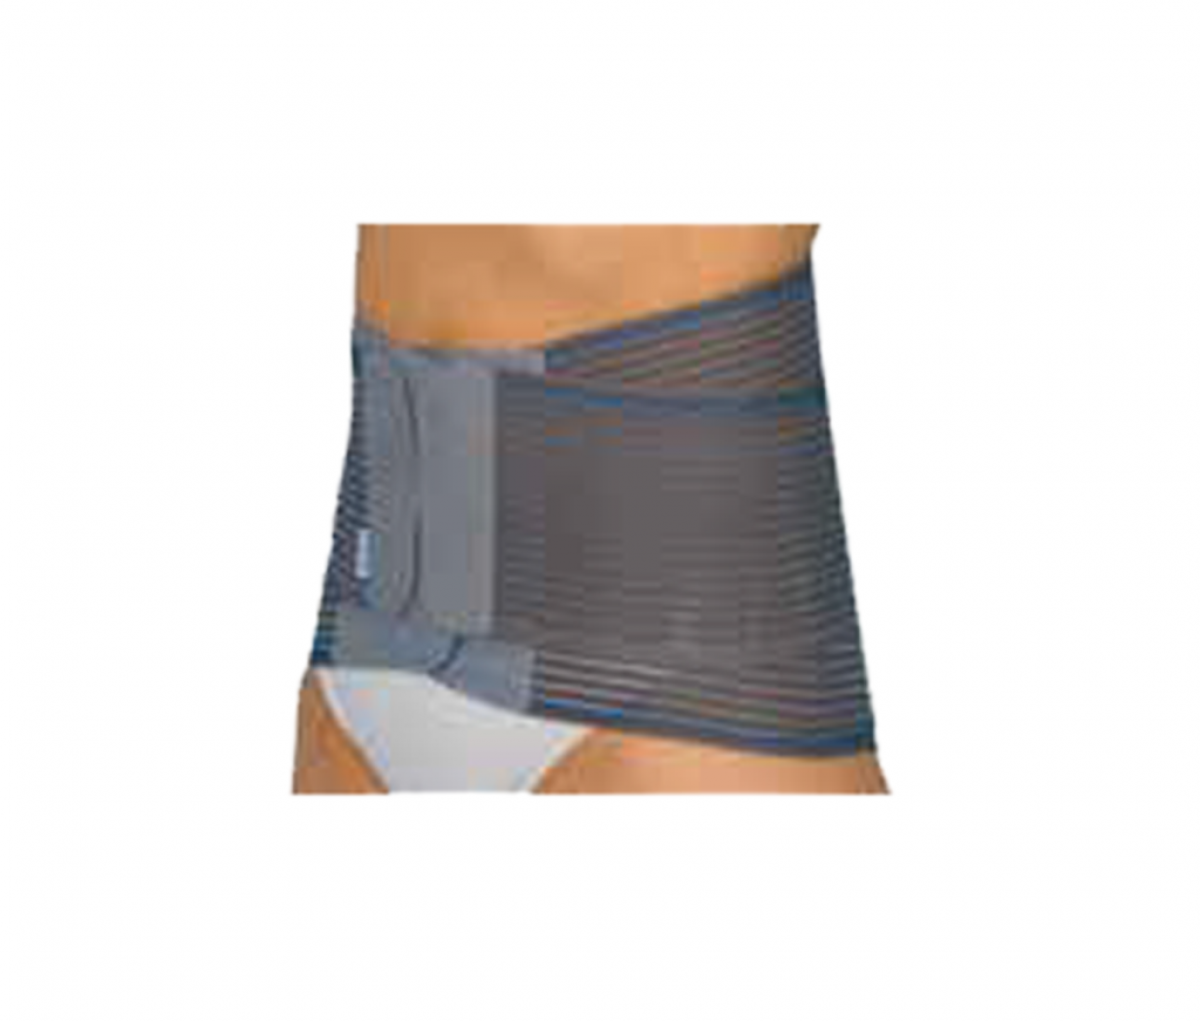 ACTION SEMIRIGID BACK SUPPORT WITH TENSOR - L 981G